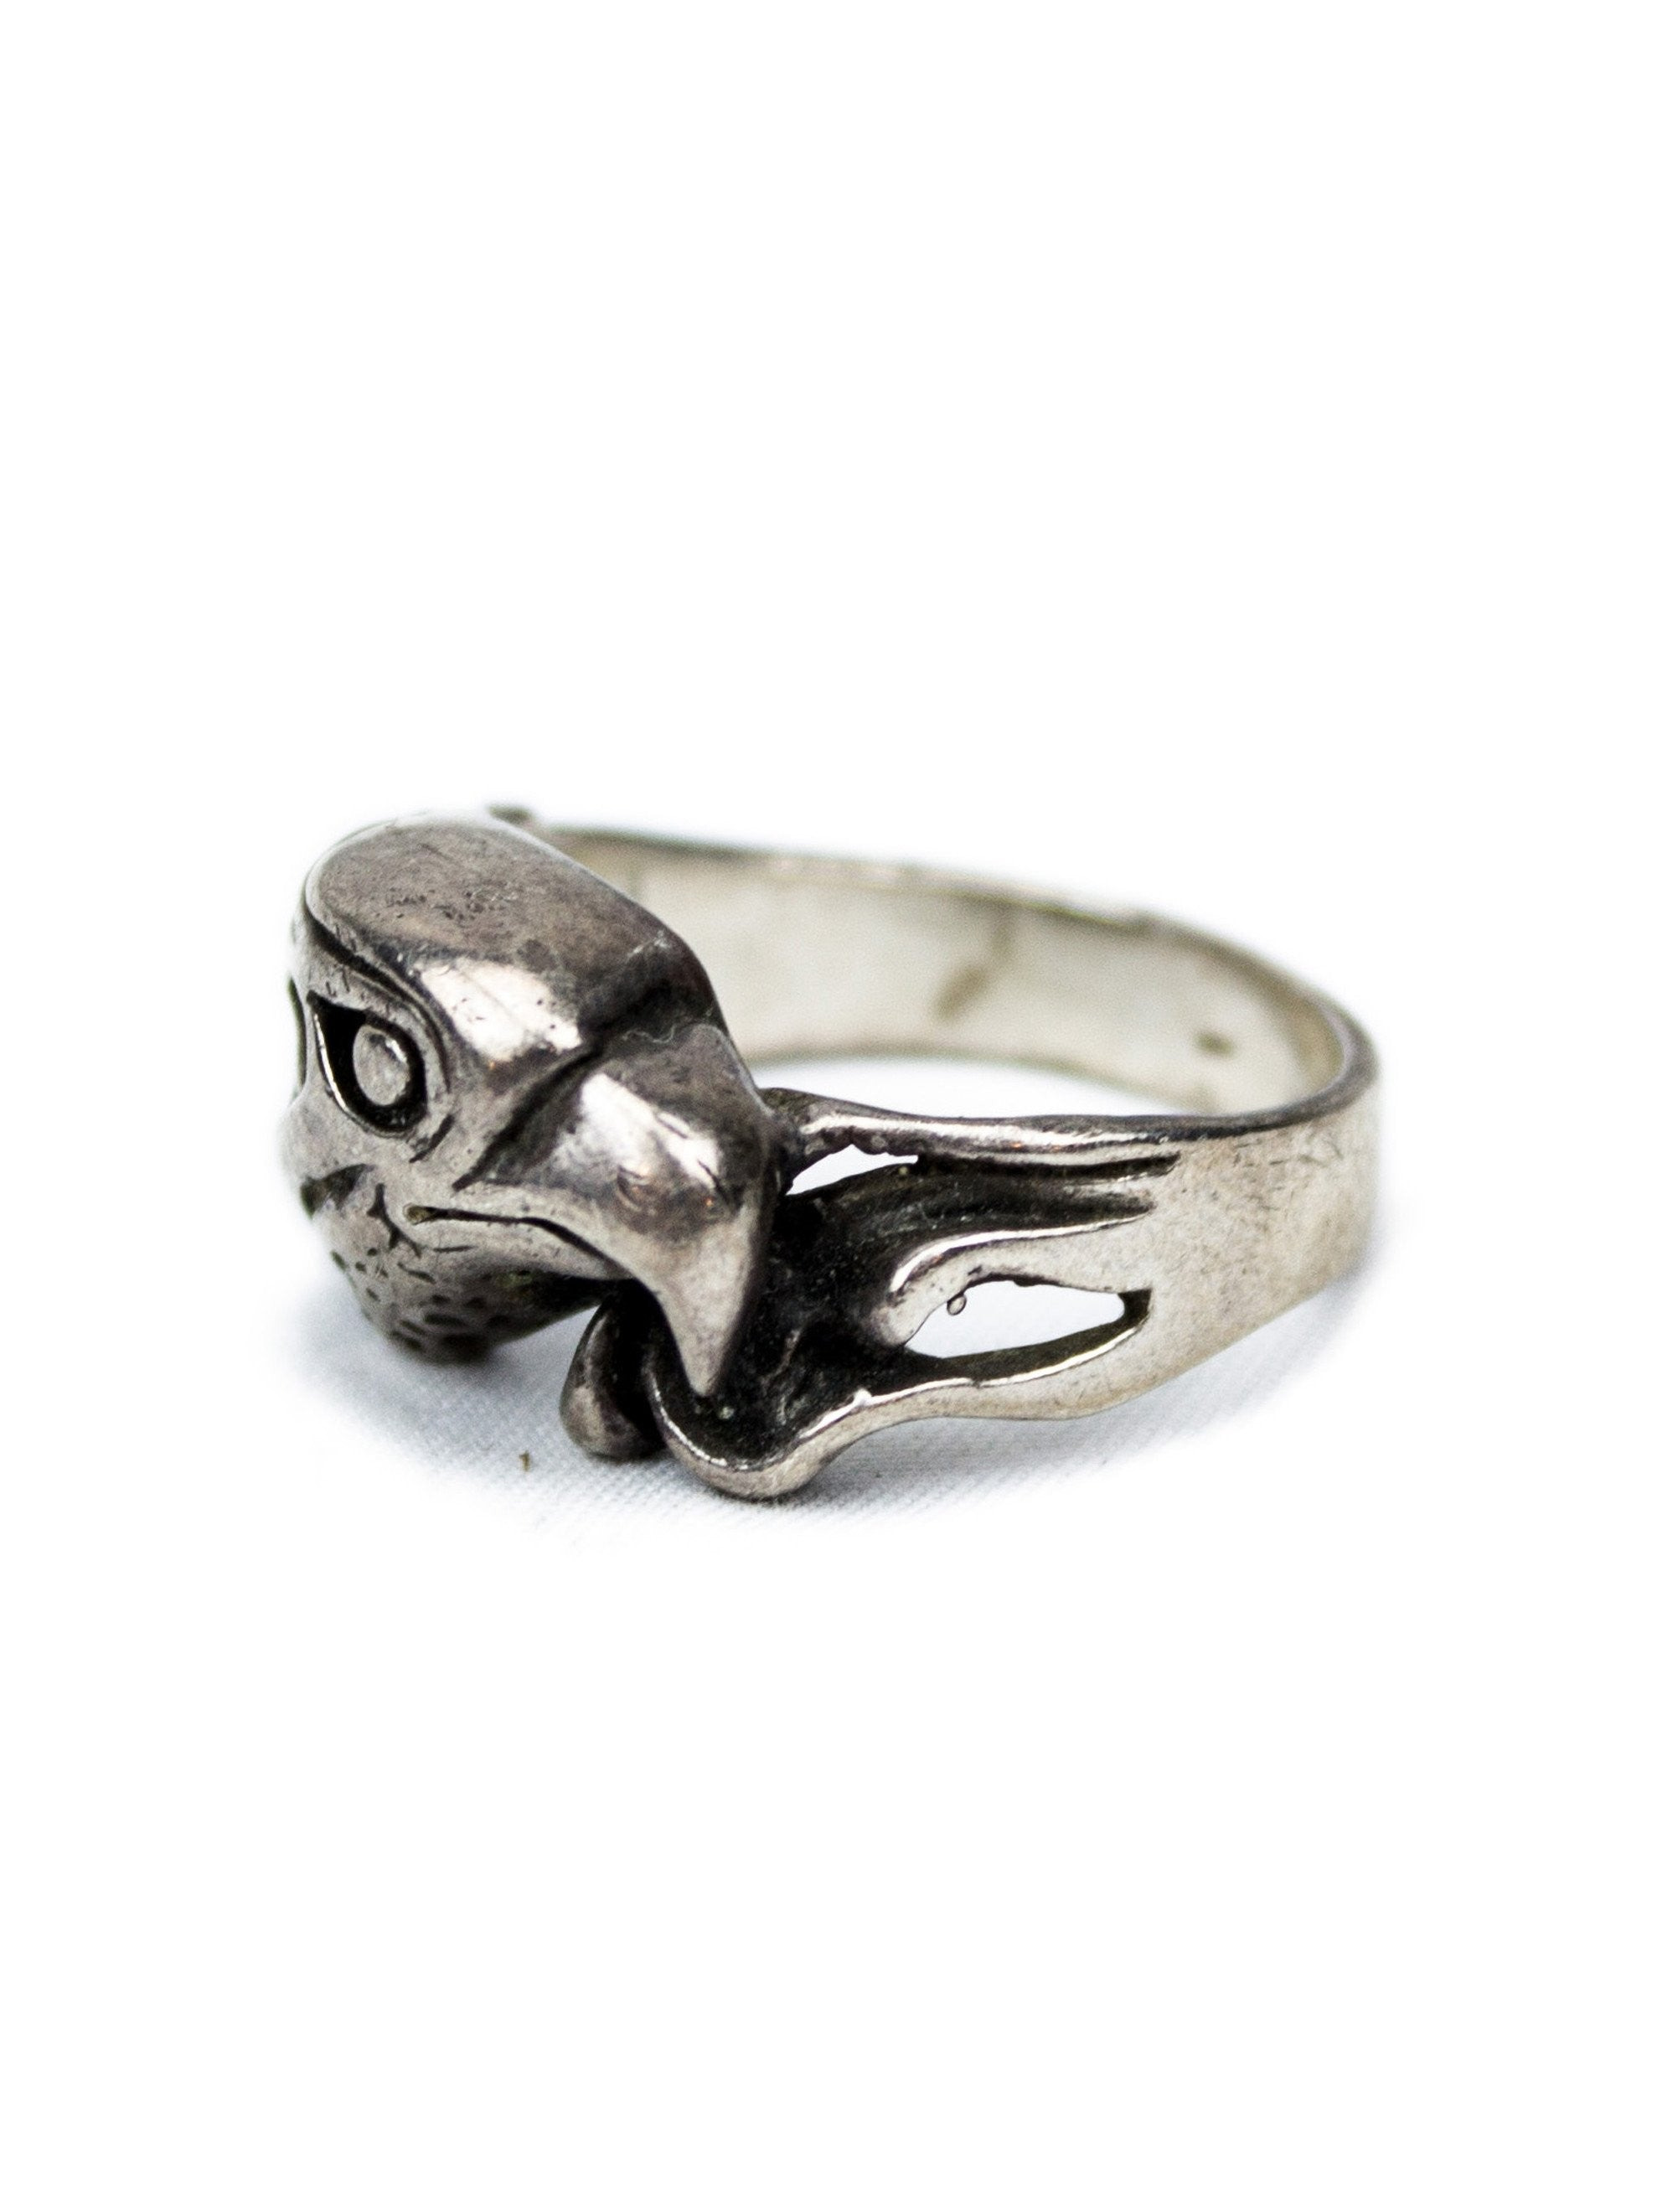 10 Vintage 1960's Sterling Silver Eagle Biker Ring 3